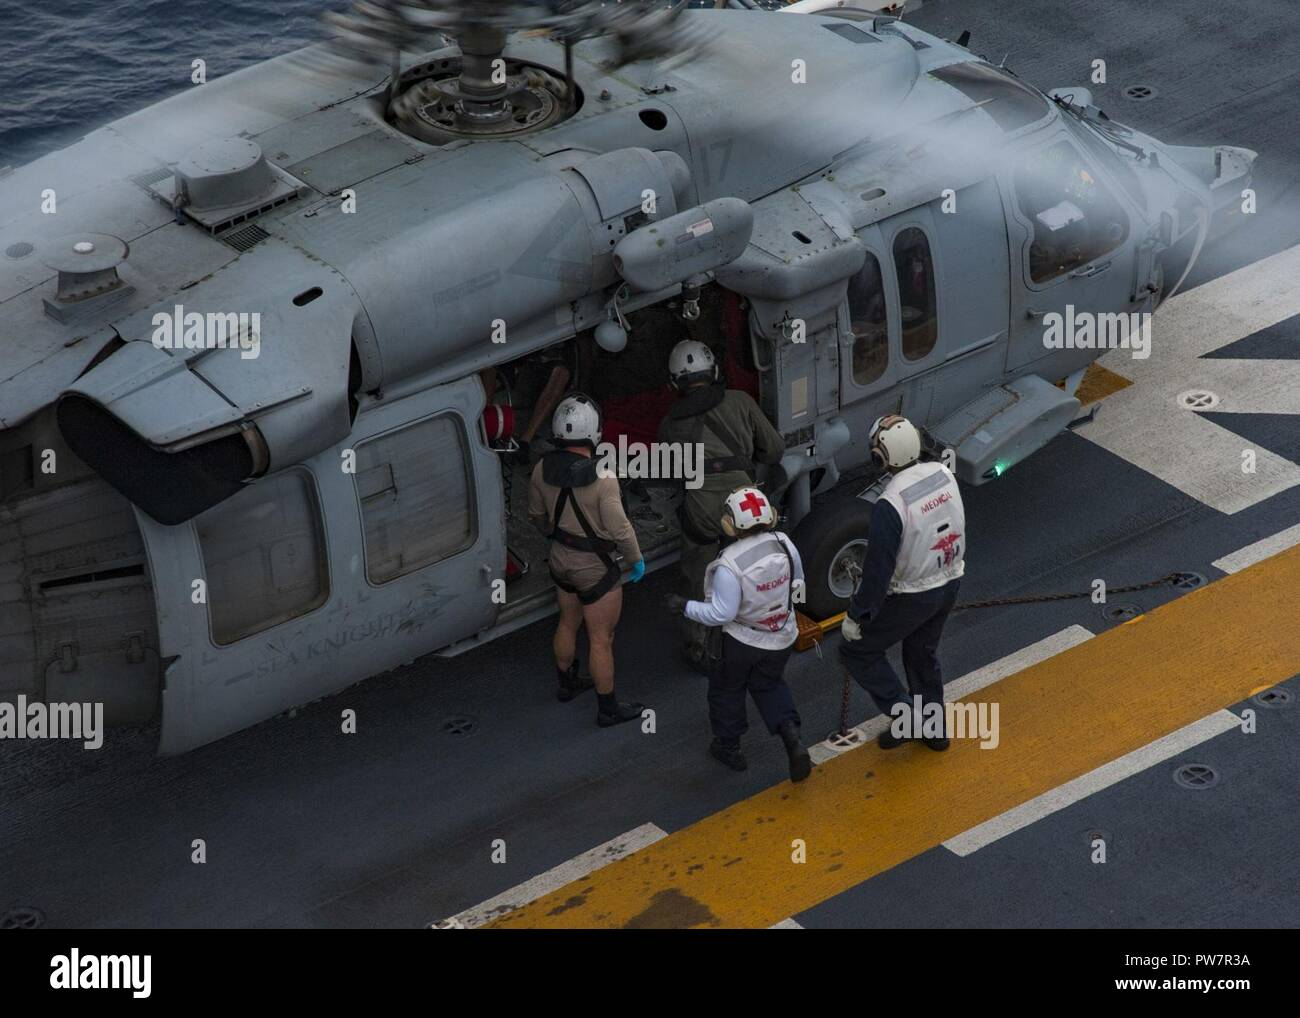 CARIBBEAN SEA (Sept. 28, 2017) Sailors escort a rescued resident of French Guadalupe on the flight deck of the amphibious assault ship USS Wasp (LHD 1) following a search and rescue (SAR) mission for a private aircraft off the coast of the island Dominica. Wasp is currently participating in humanitarian relief efforts on Dominica following the landfall of Hurricane Maria. The Department of Defense is supporting the United States Agency for International Development (USAID), the lead federal agency, in helping those affected by Hurricane Maria to minimize suffering and is one component of the o Stock Photo